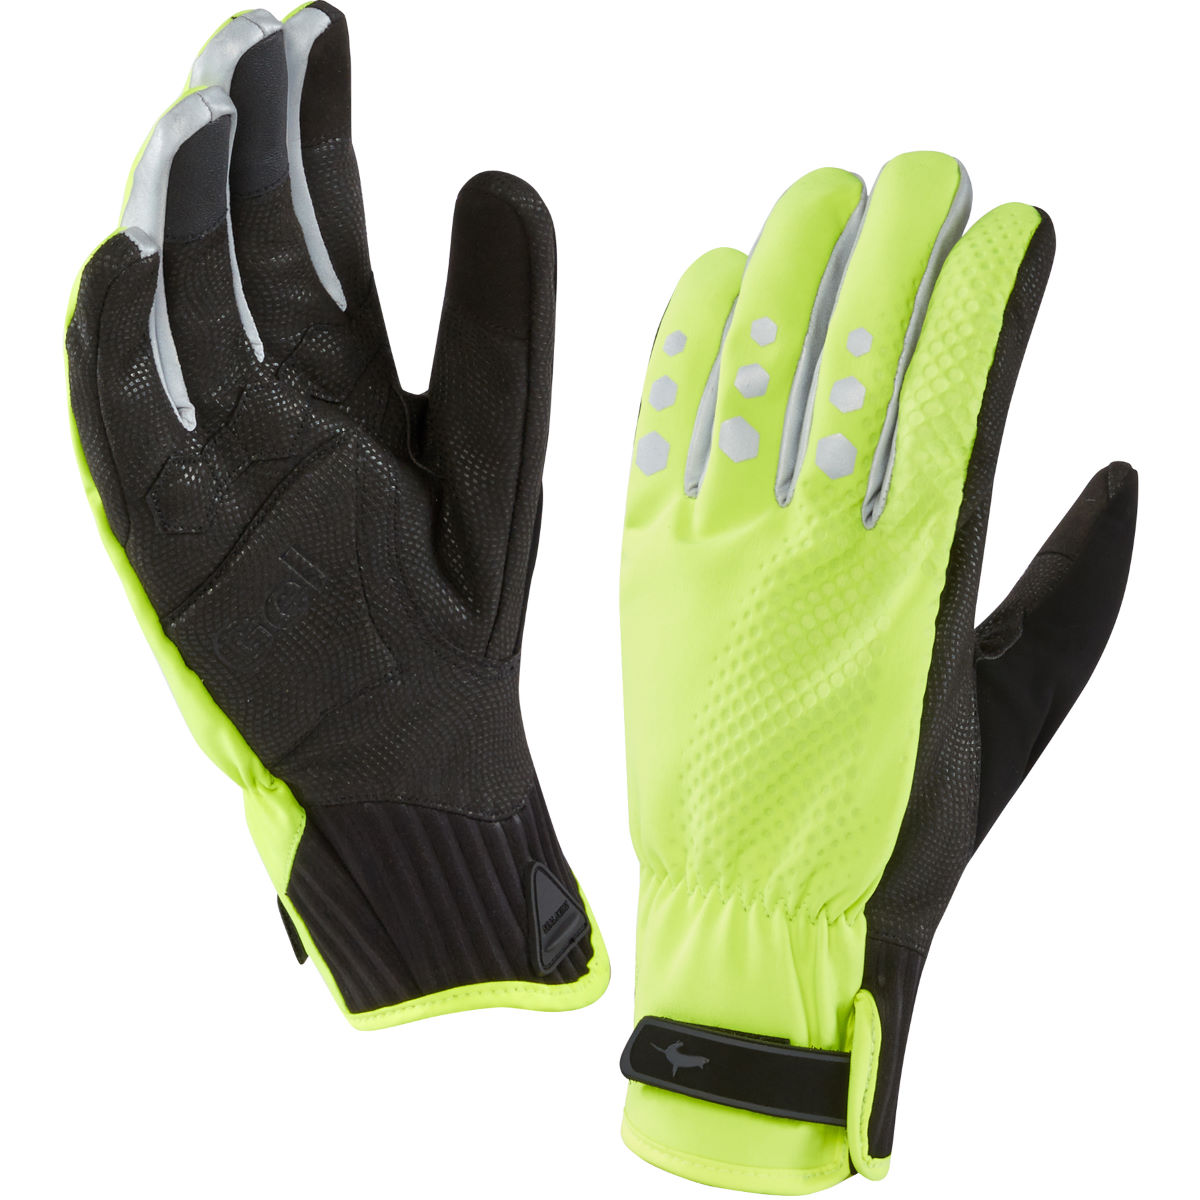 Gants vélo SealSkinz All Weather XP - 2XL Noir/Noir Gants